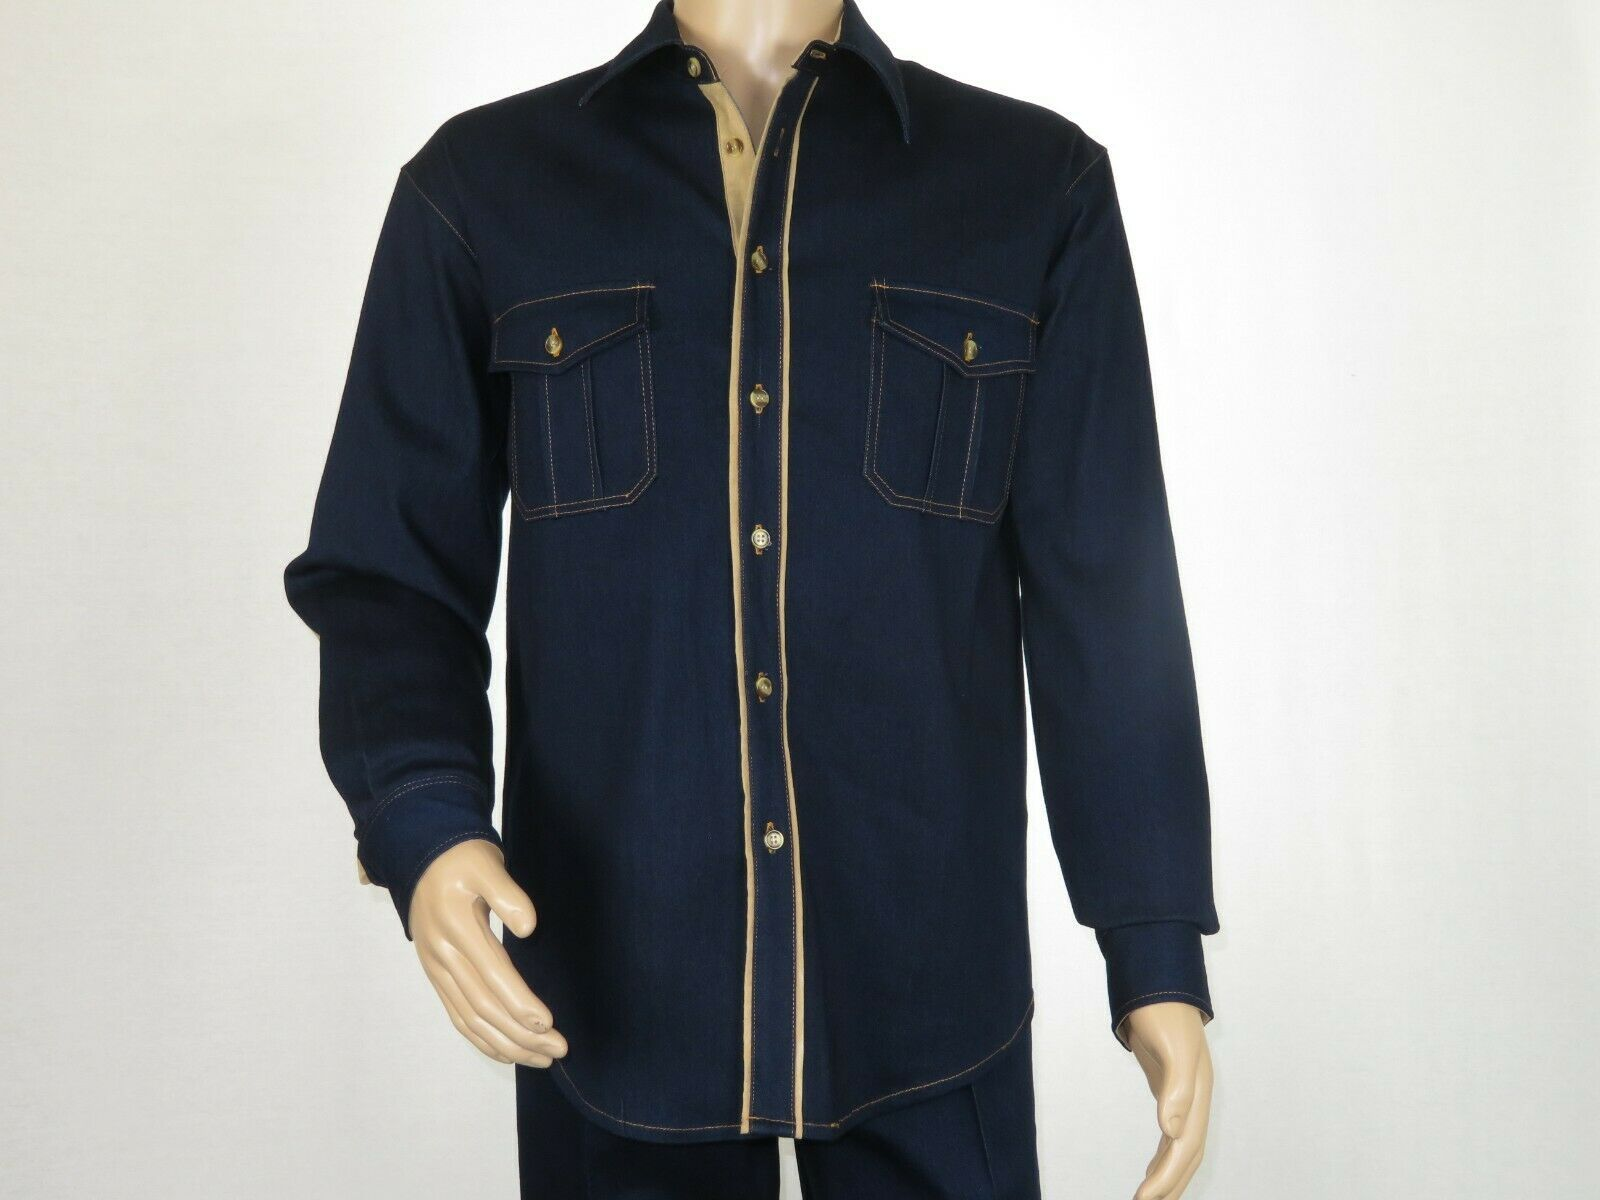 Primary image for Mens ROYAL DIAMOND 2pc Walking Leisure suit Denim Cotton Blend JSS-1 Navy Blue